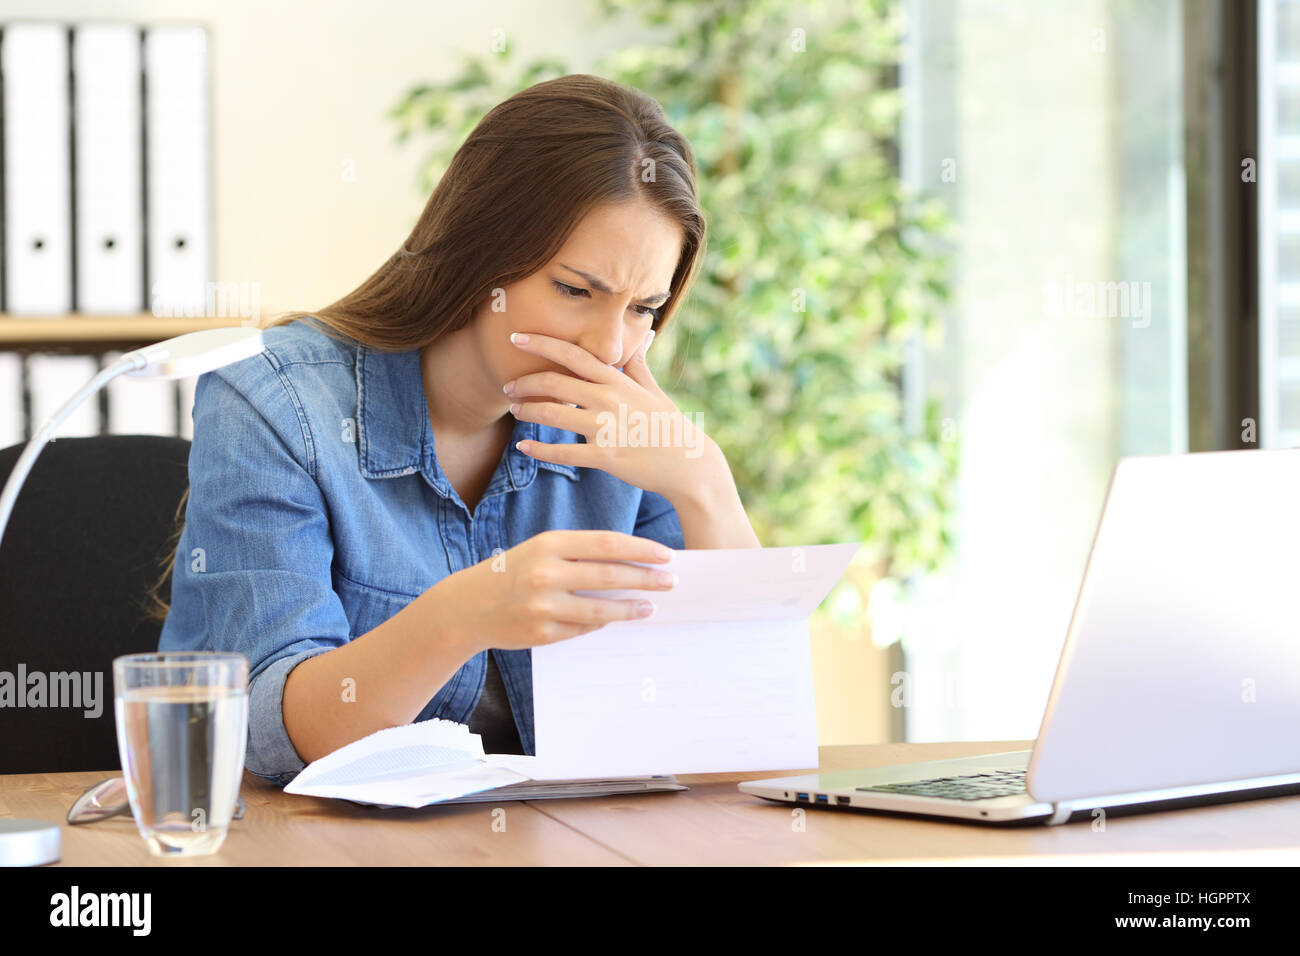 Worried entrepreneur girl working at office reading bad news in a letter on a desktop - Stock Image